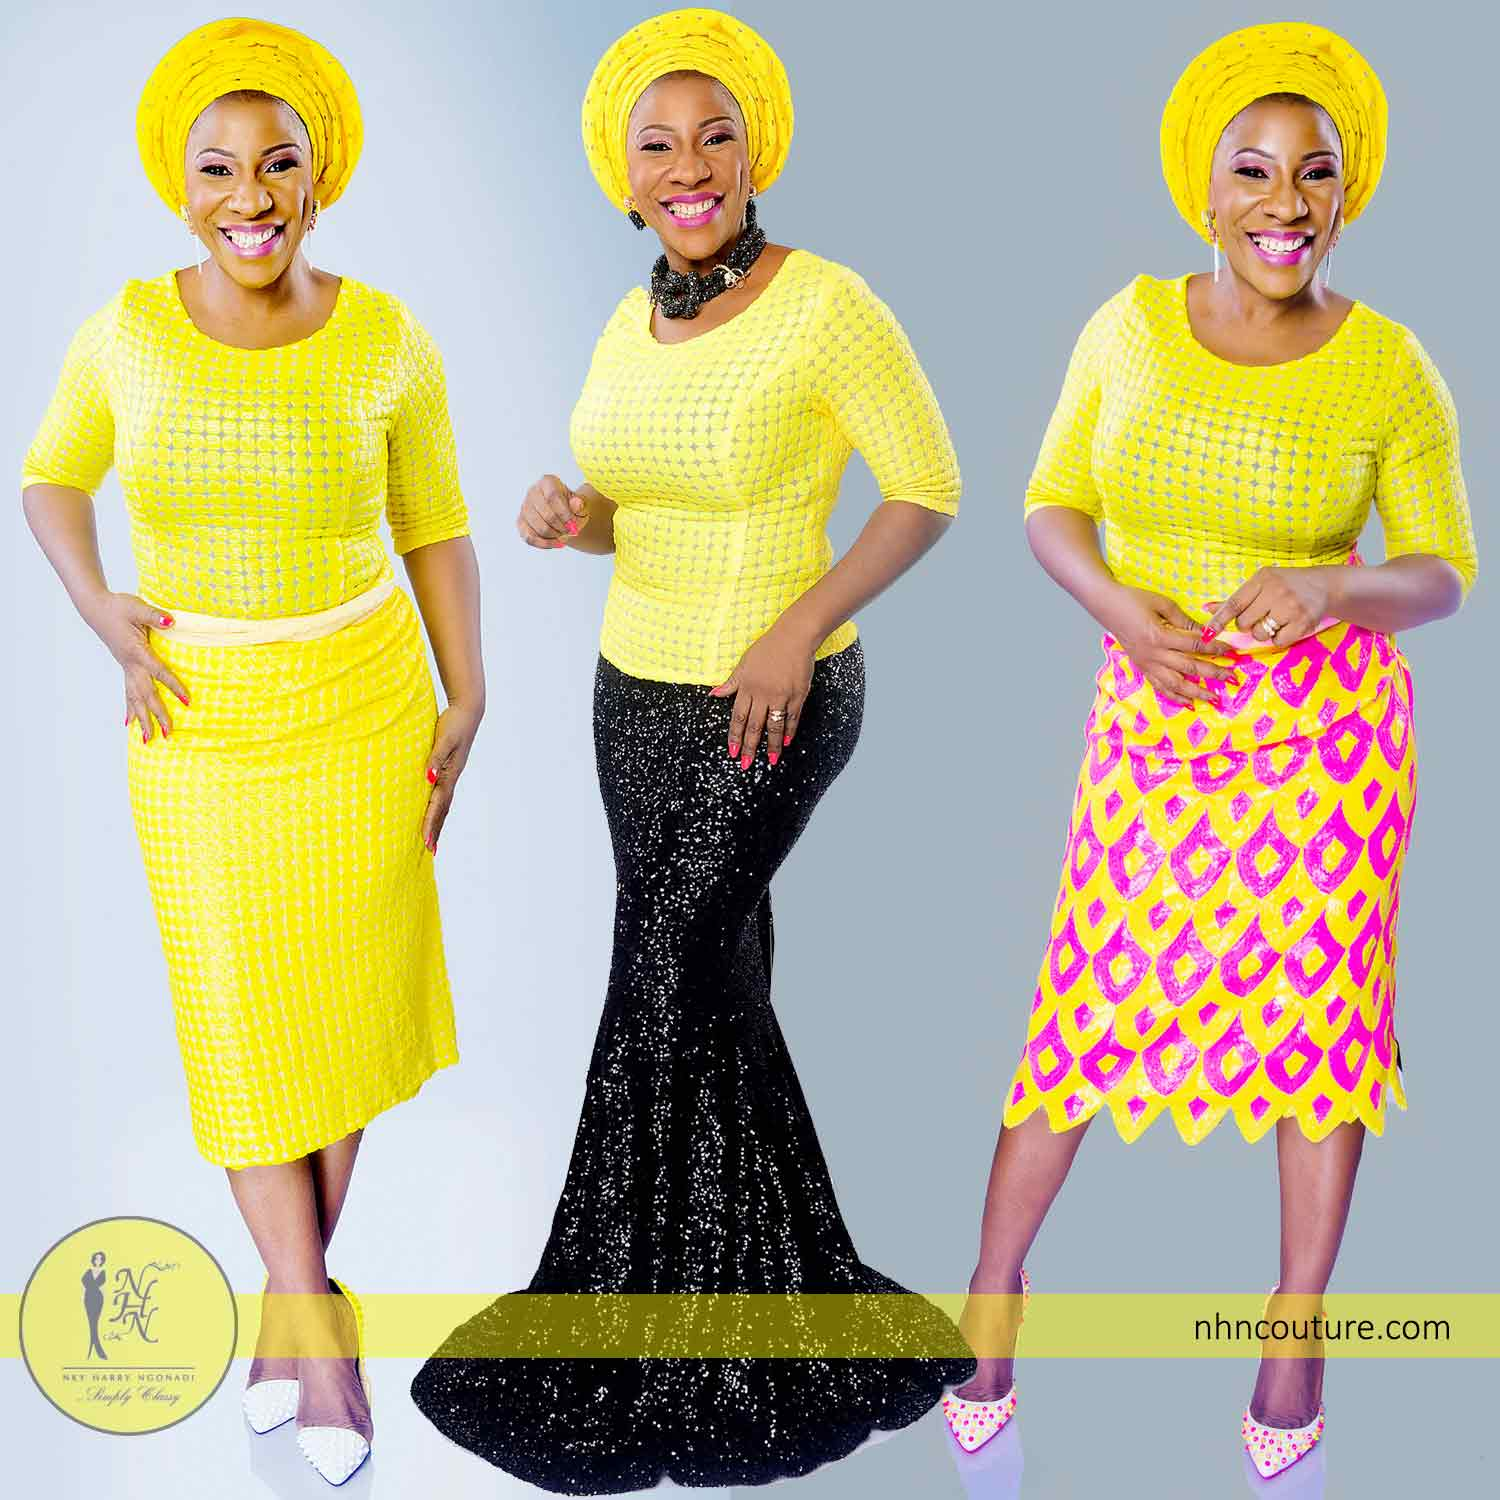 Packaging-and-Rerocking-my-outfit-NHN-Couture